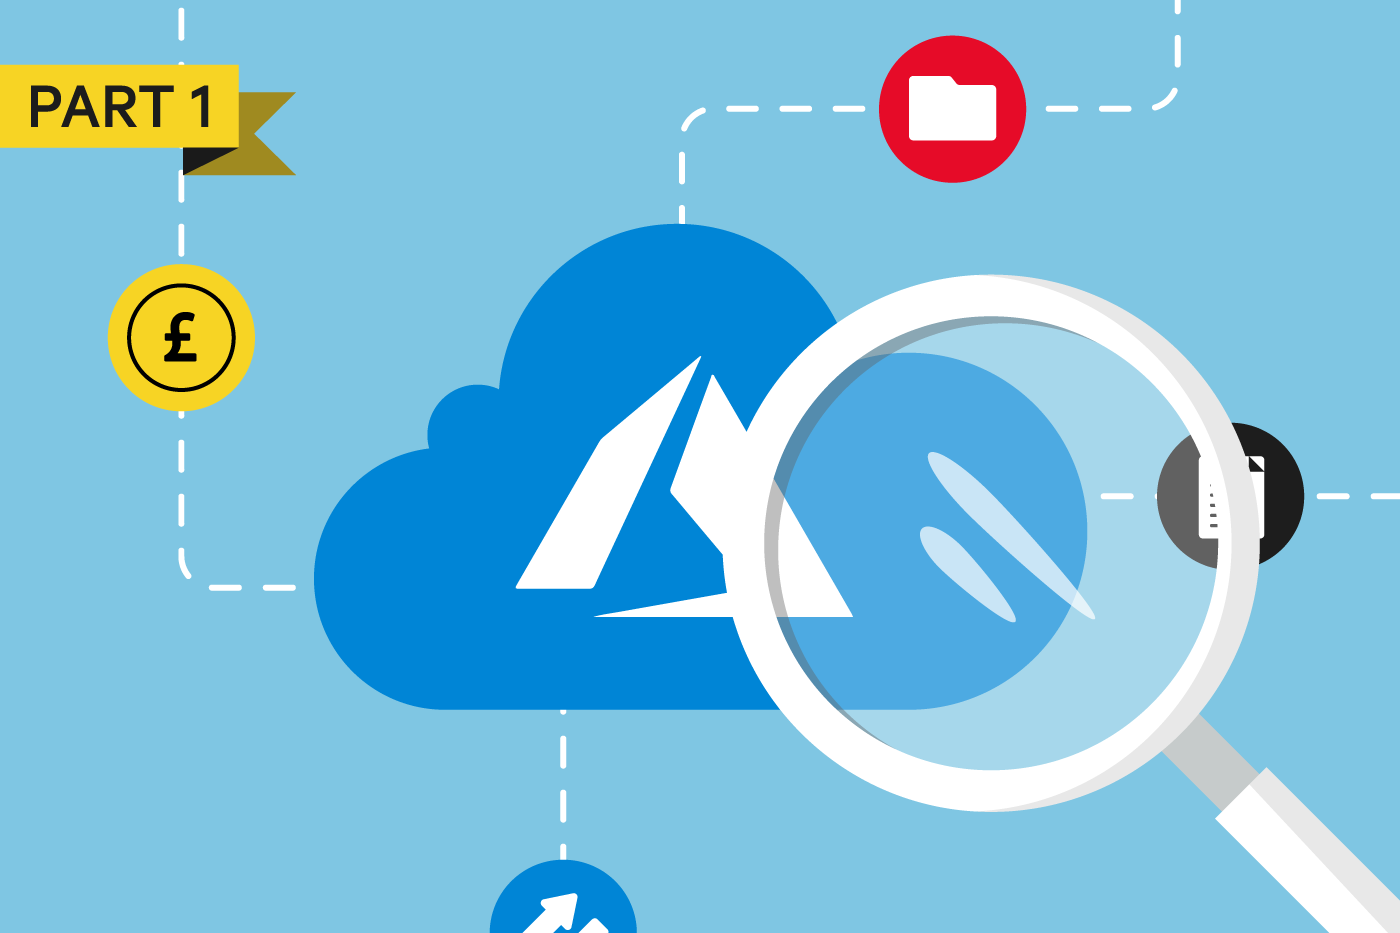 What does Azure Cognitive Search do for business? Part 1